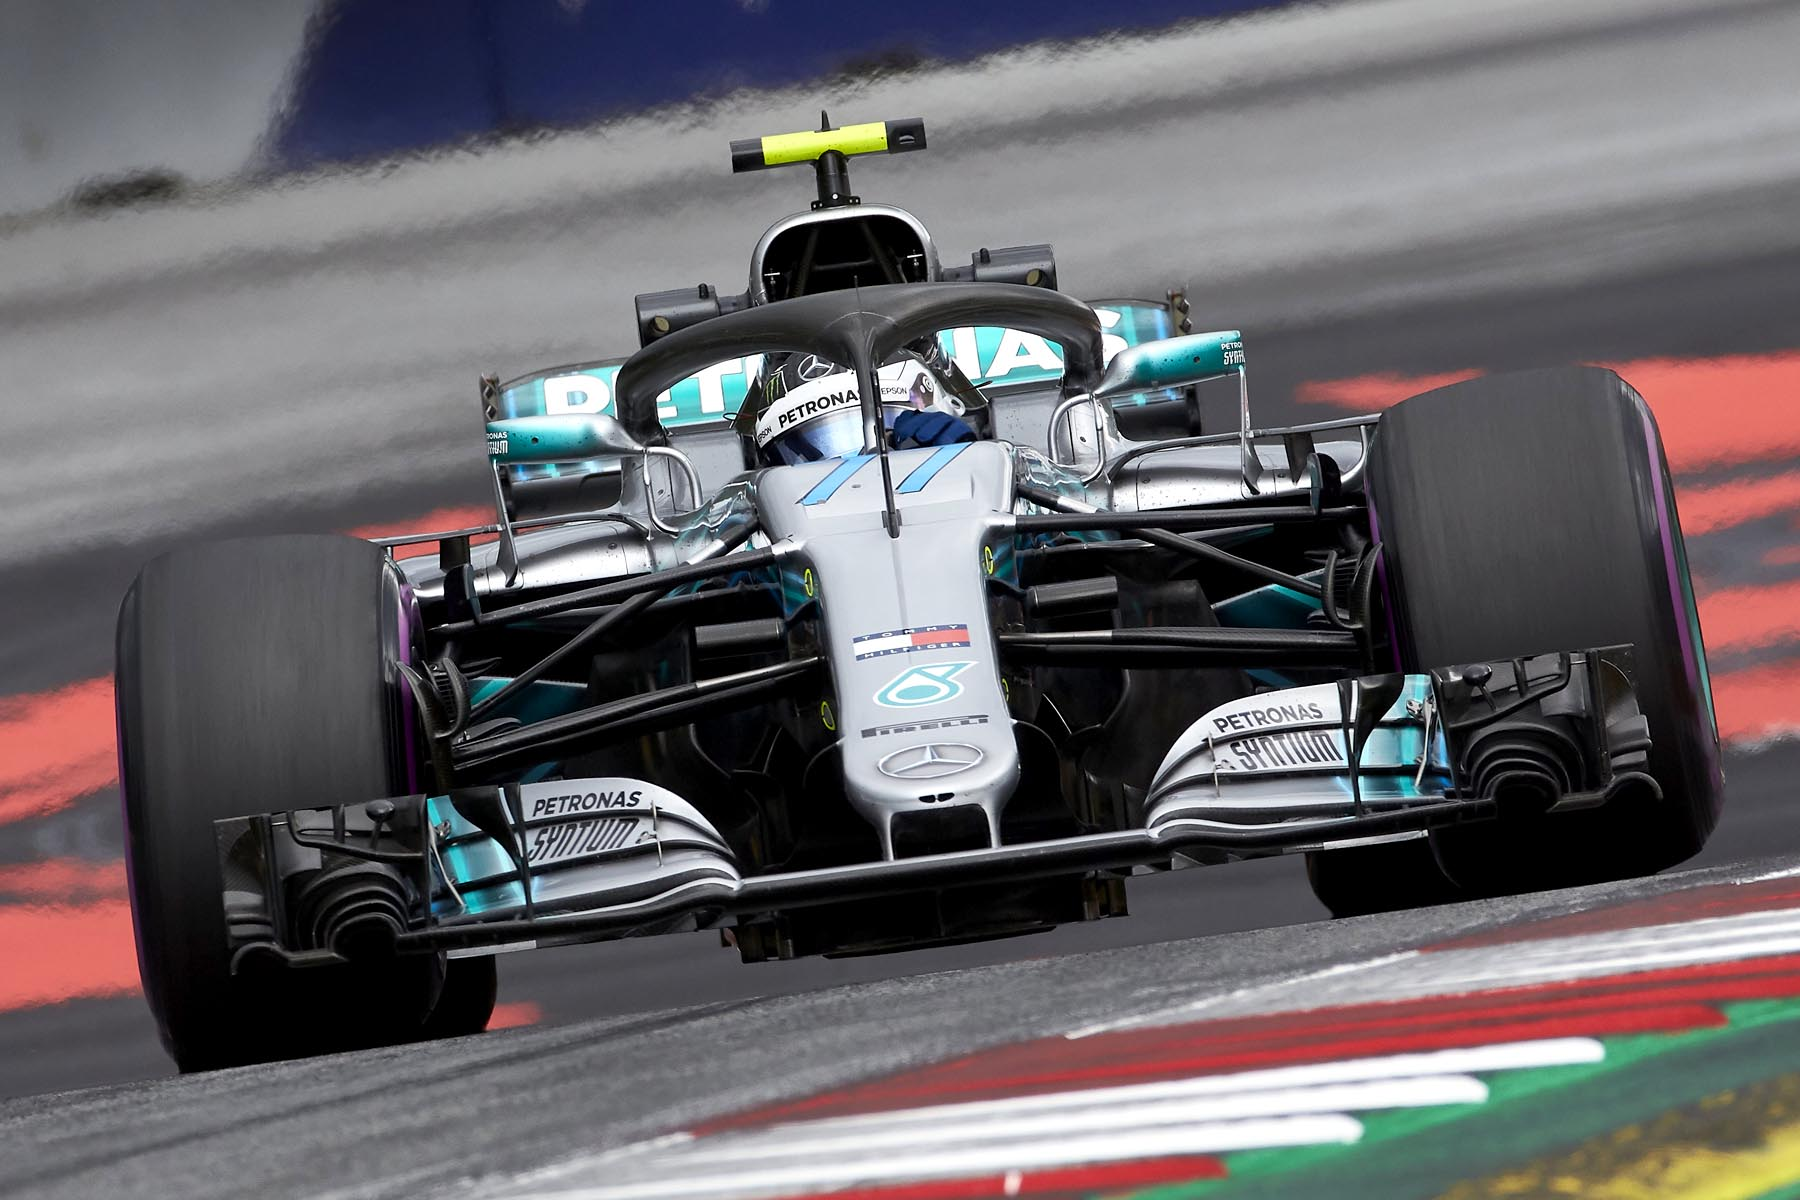 Valtteri Bottas on track at the 2018 Austrian Grand Prix.